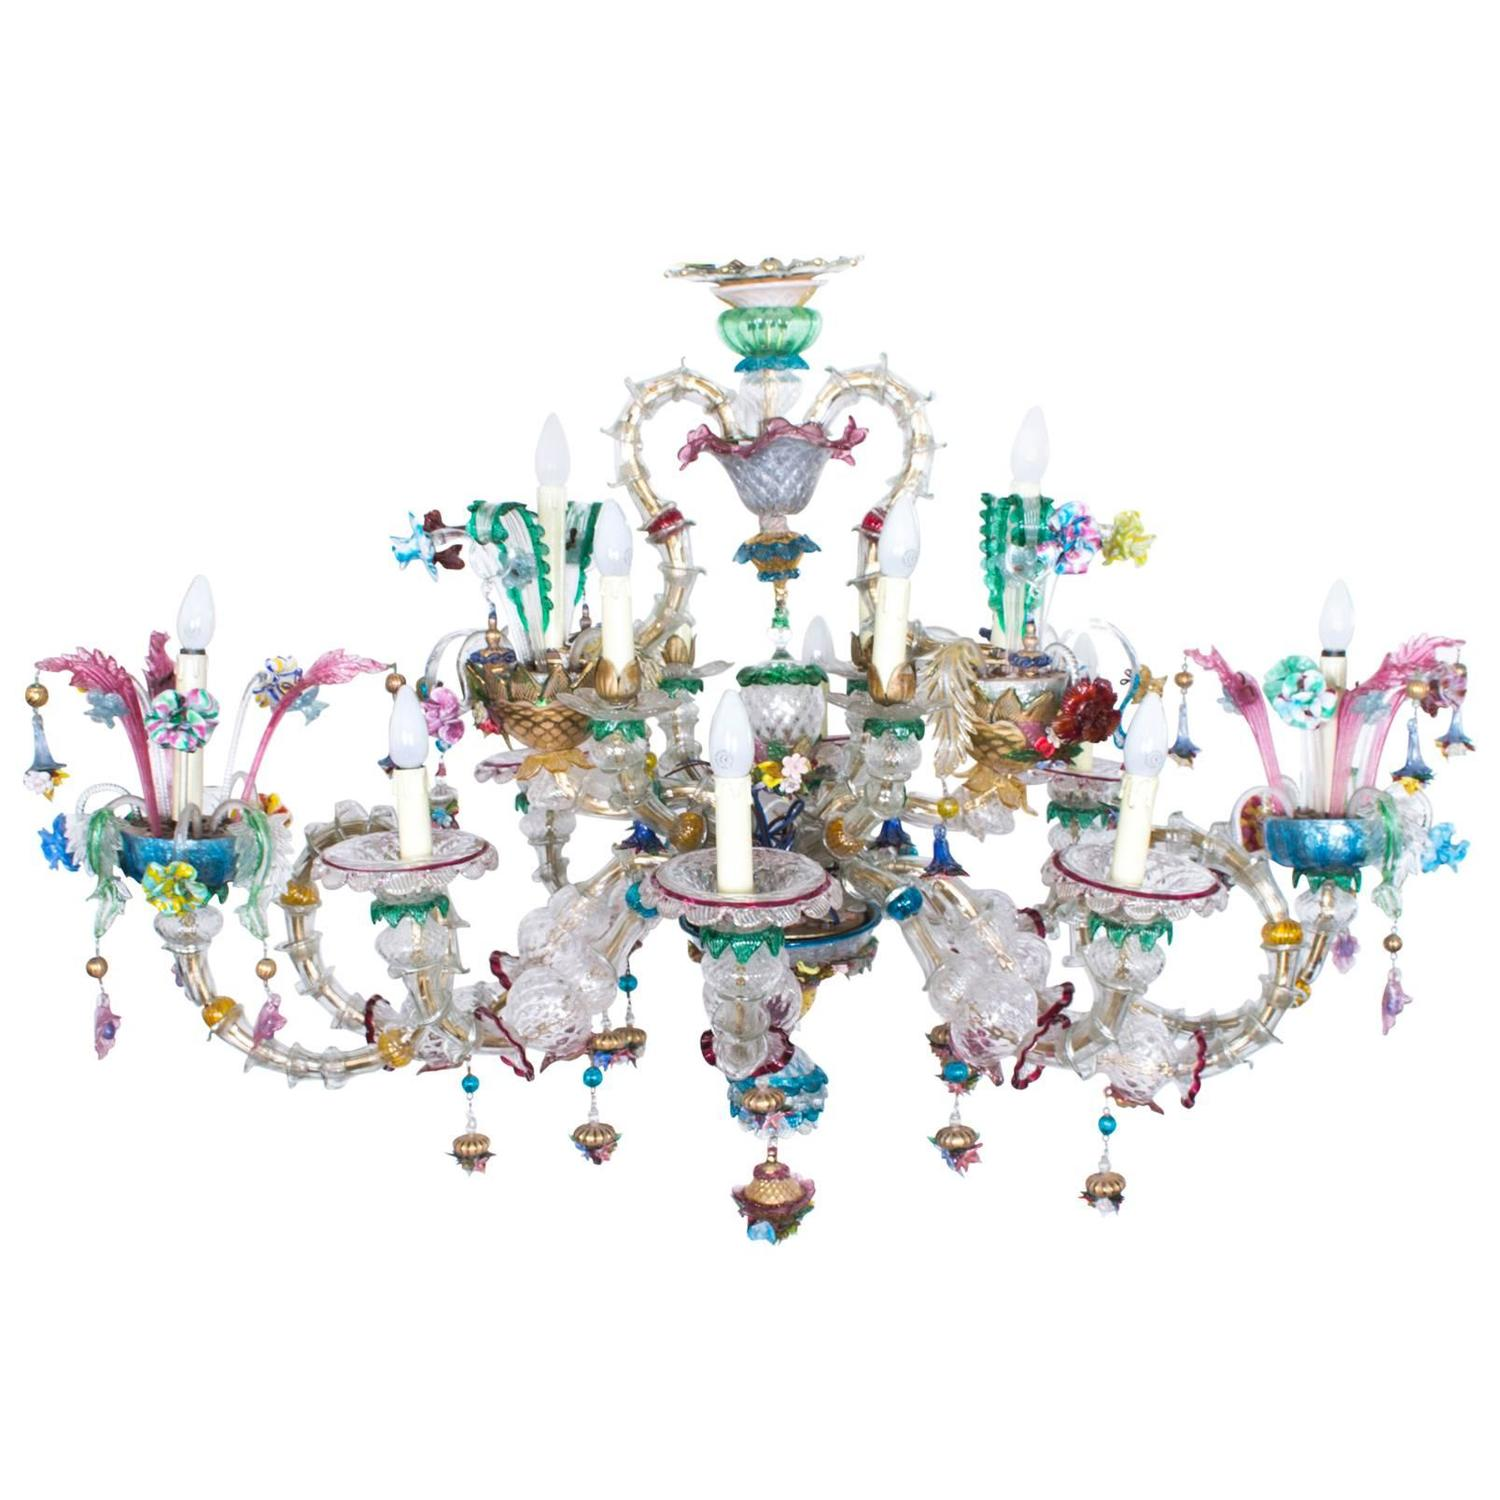 Antique Venetian Glass 14 Branch Murano Chandelier circa 1850 at